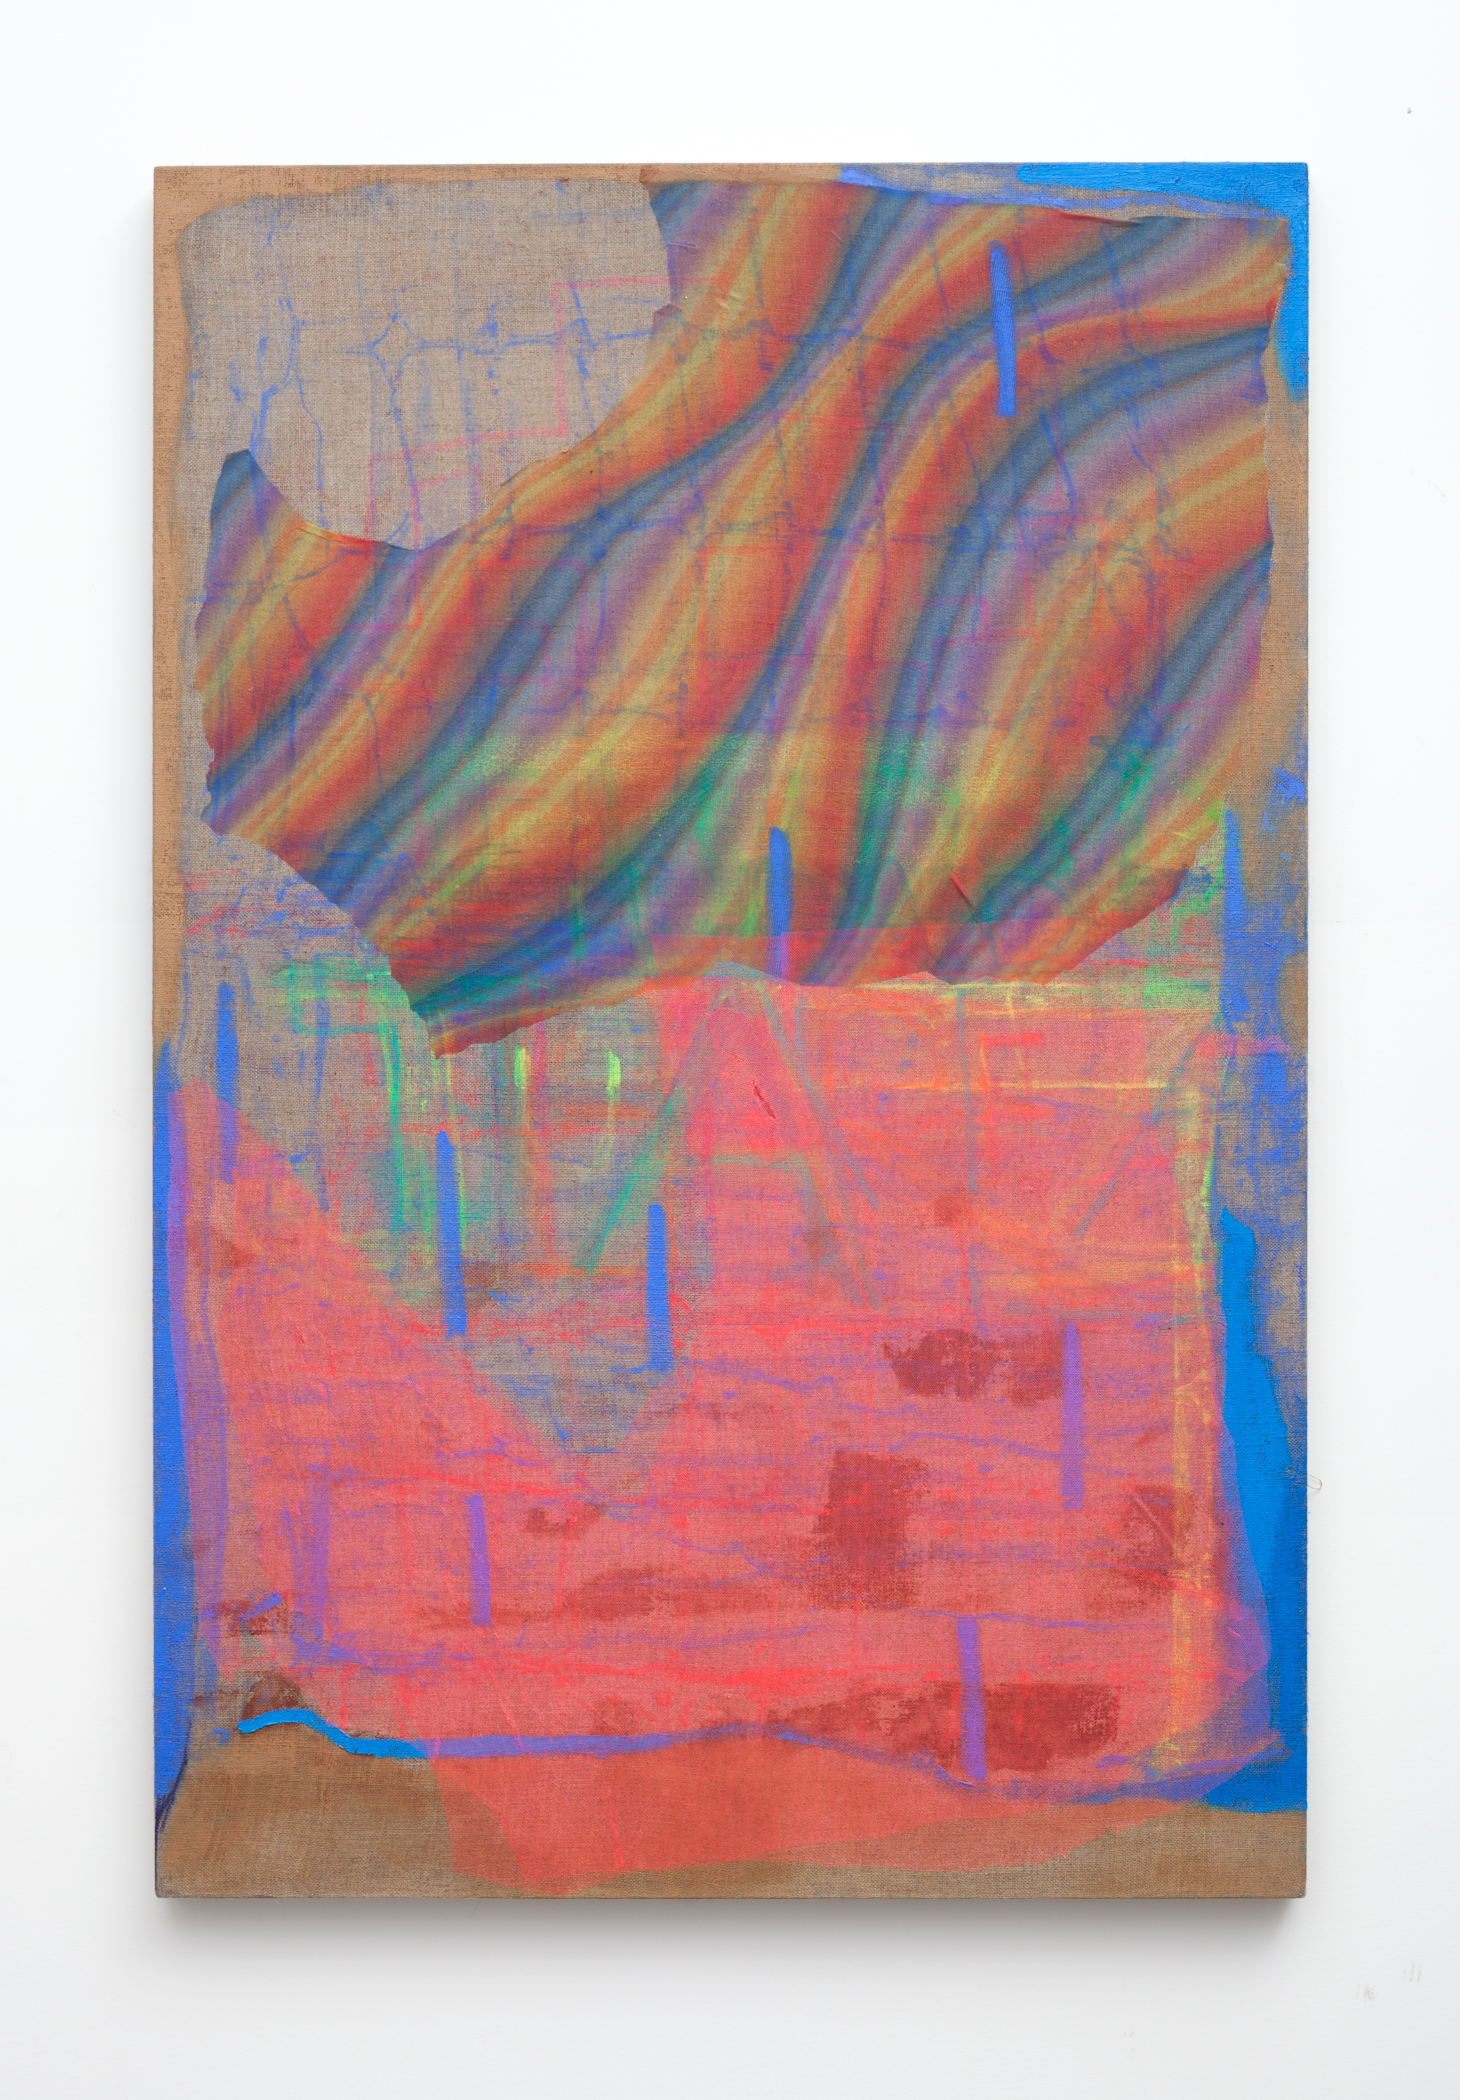 Desert Posts  oil paint, oil stick, tulle and acrylic polymer on linen on wood stretcher 28 x 40 inches  2015-16 Photo by Maggie Shannon